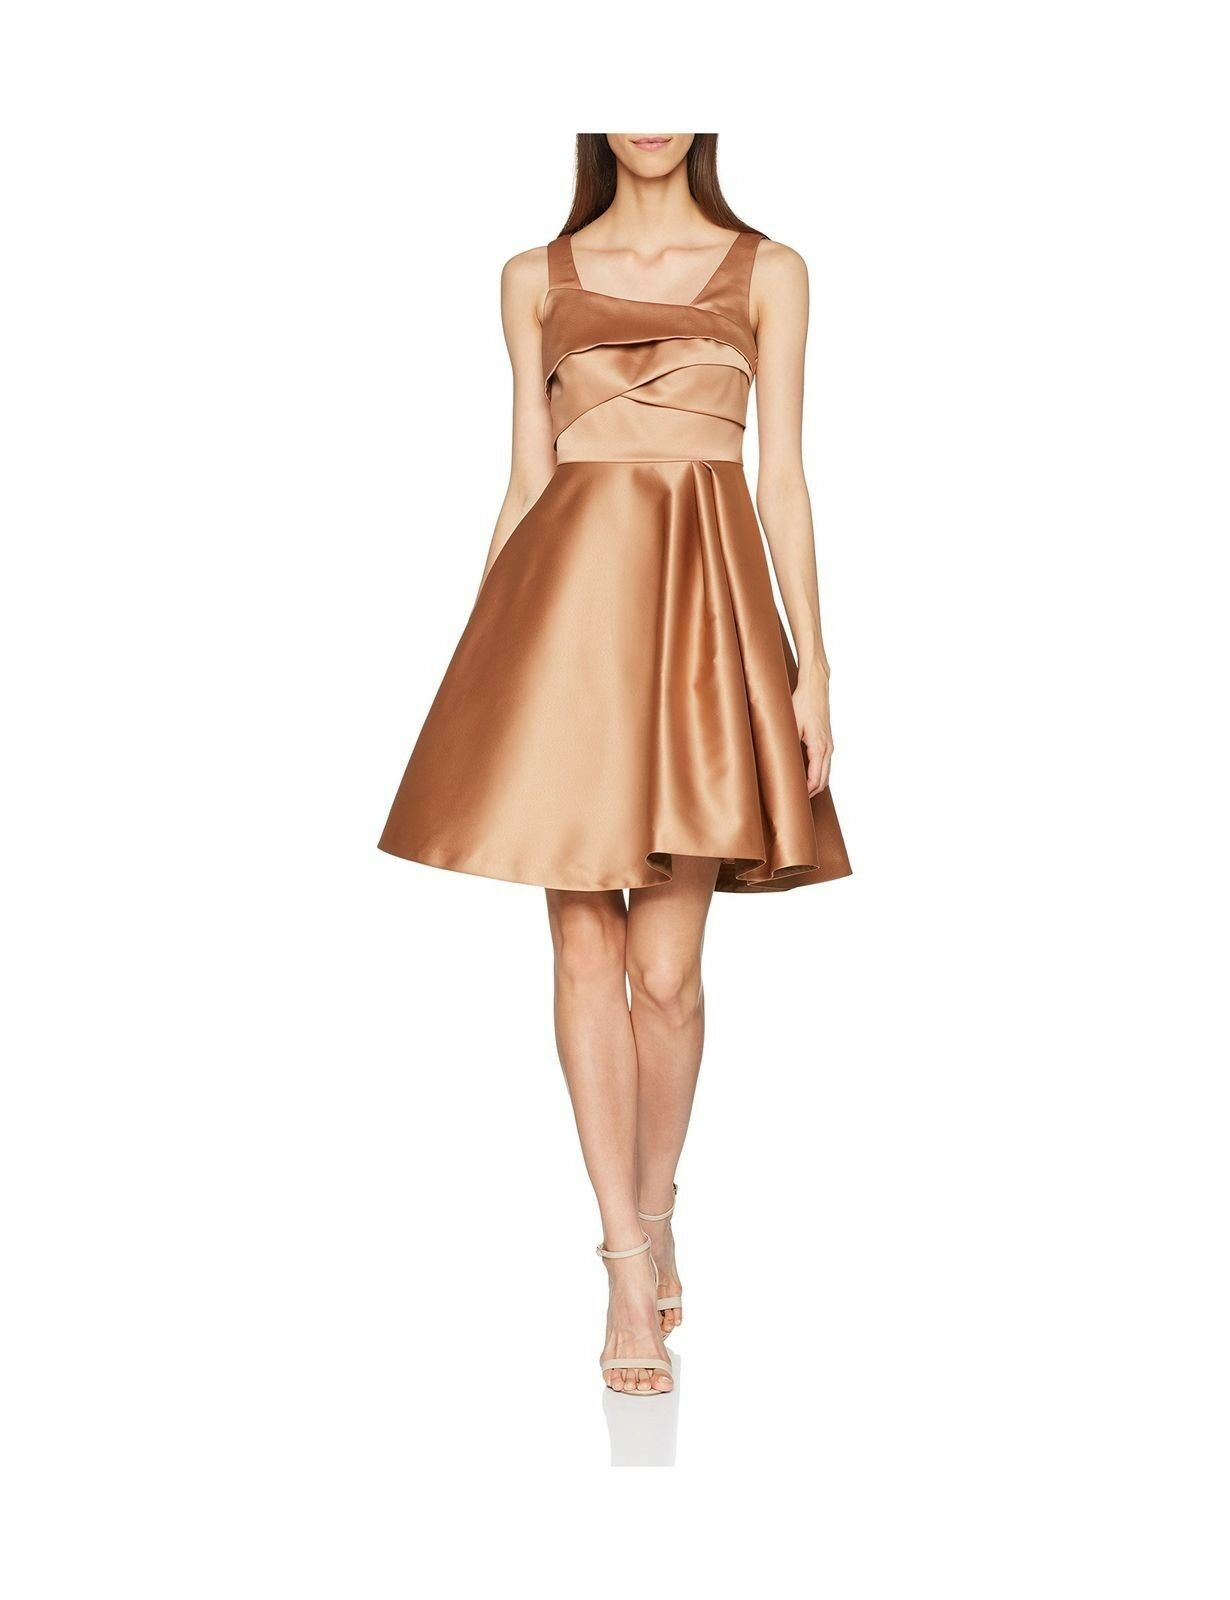 COAST AMORE CARAMEL SATIN EVENING SPECIAL OCCASION PARTY DRESS SIZE 14 BNWT